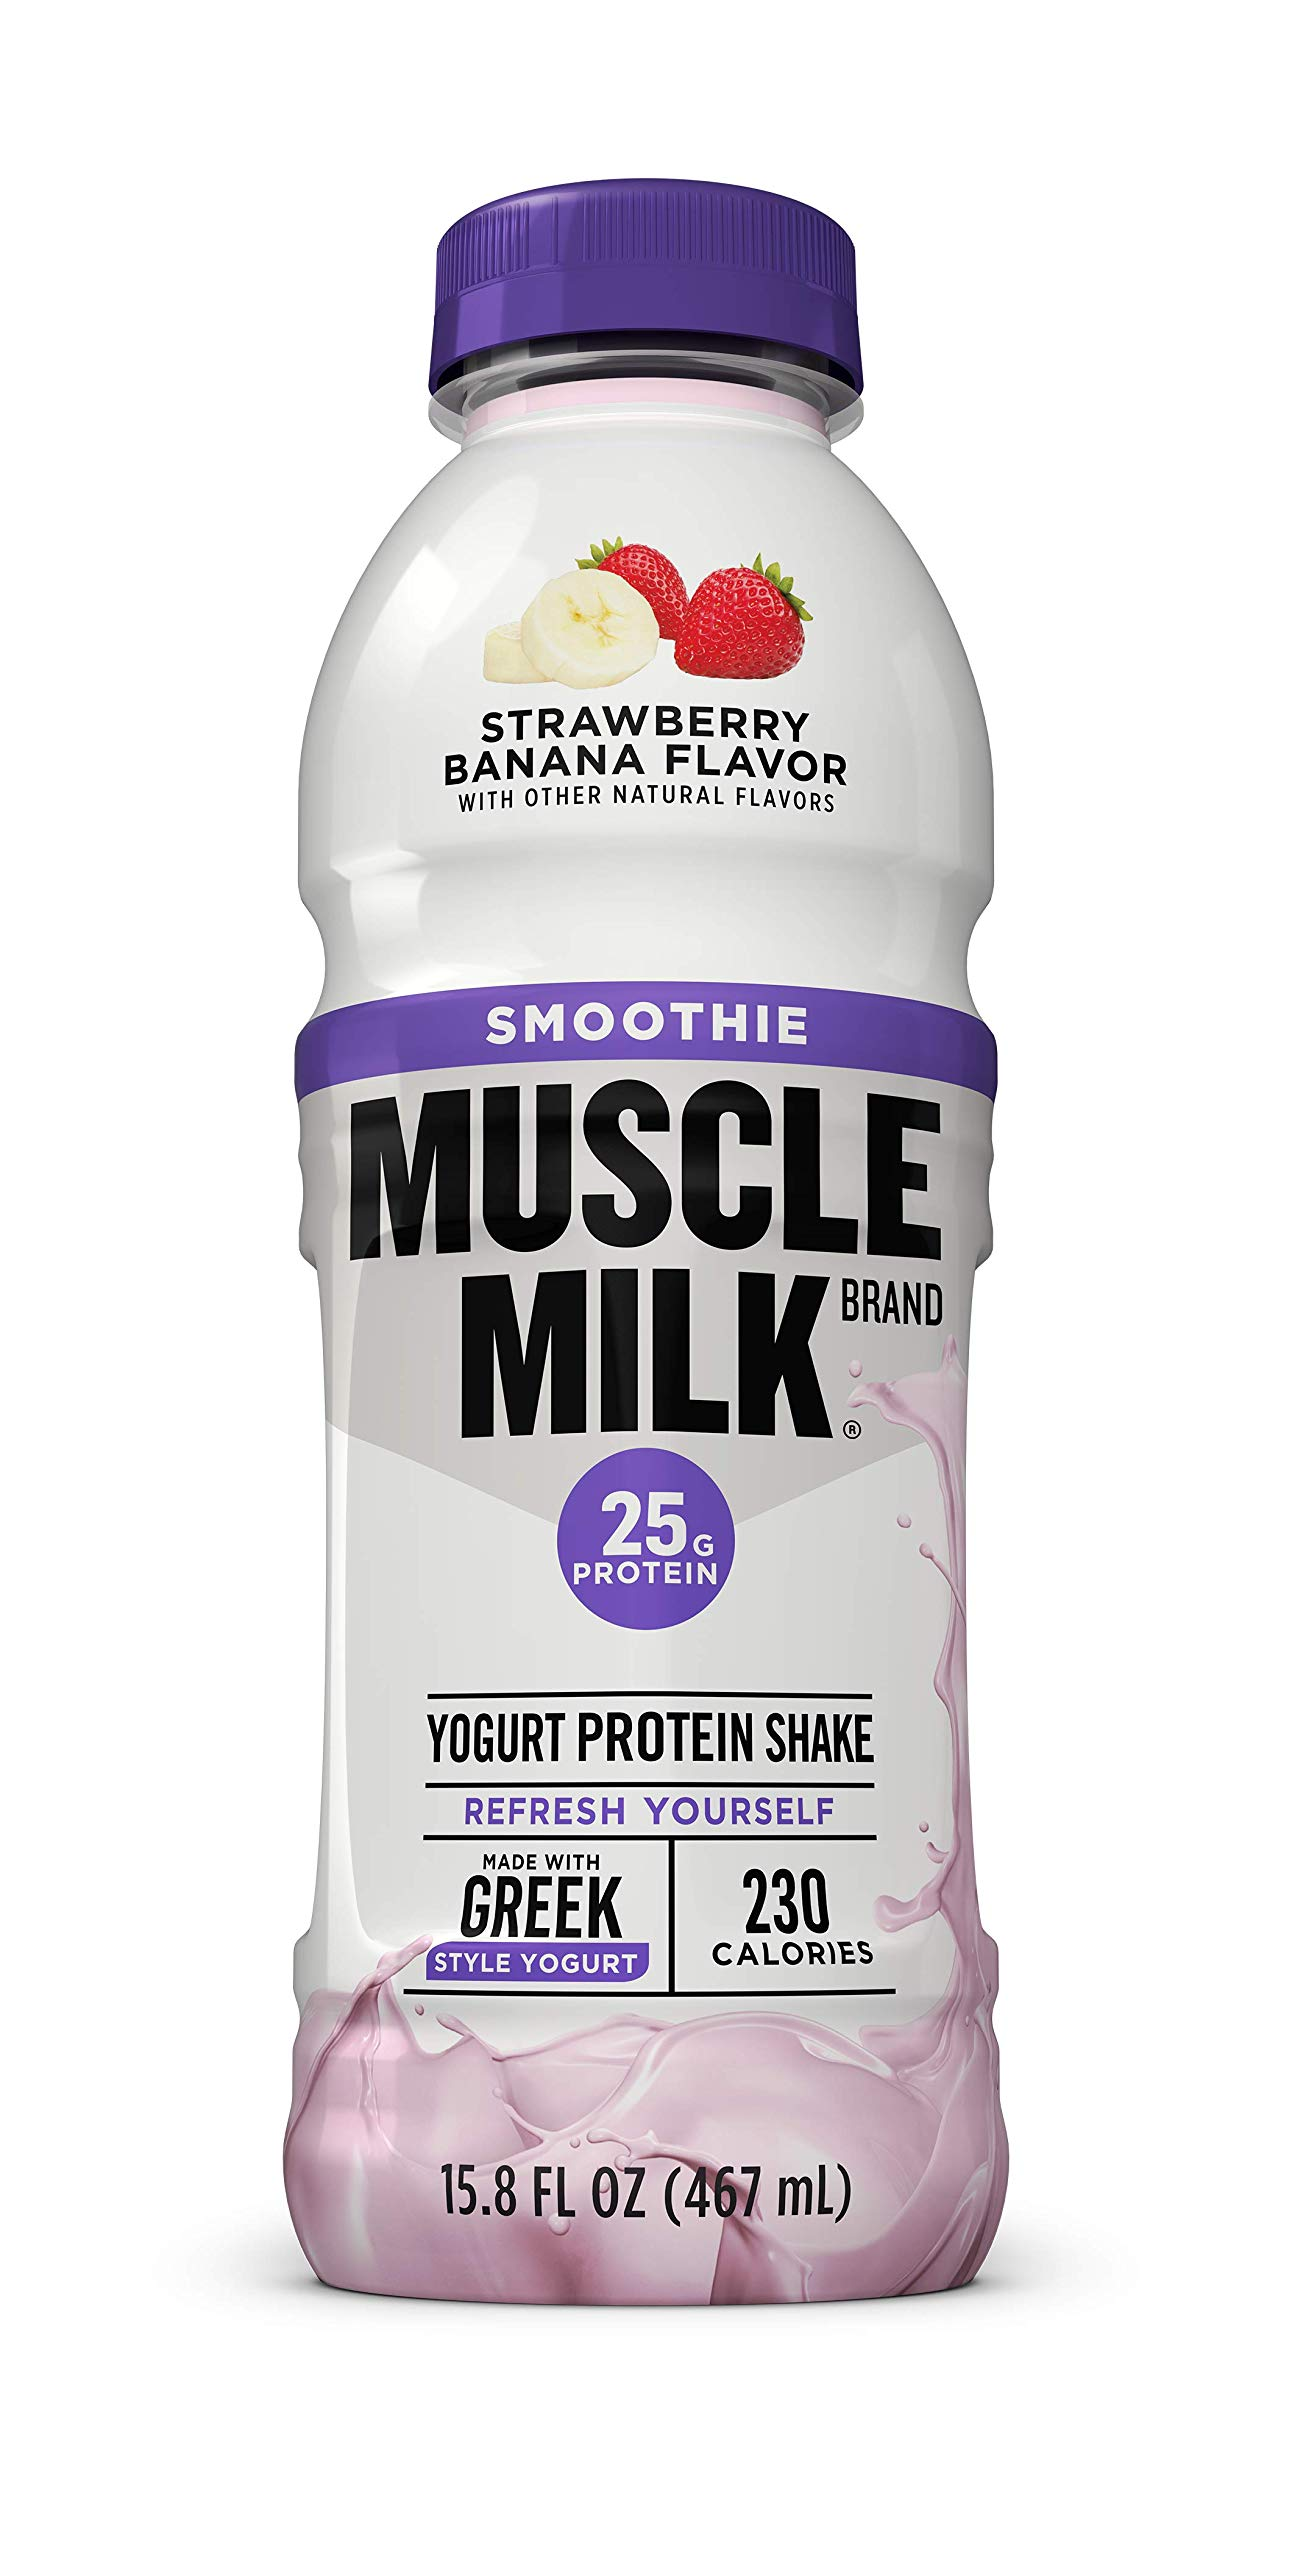 Muscle Milk Smoothie Protein Yogurt Shake, Strawberry Banana, 25g Protein, 15.8 FL OZ, 12 Count by CytoSport